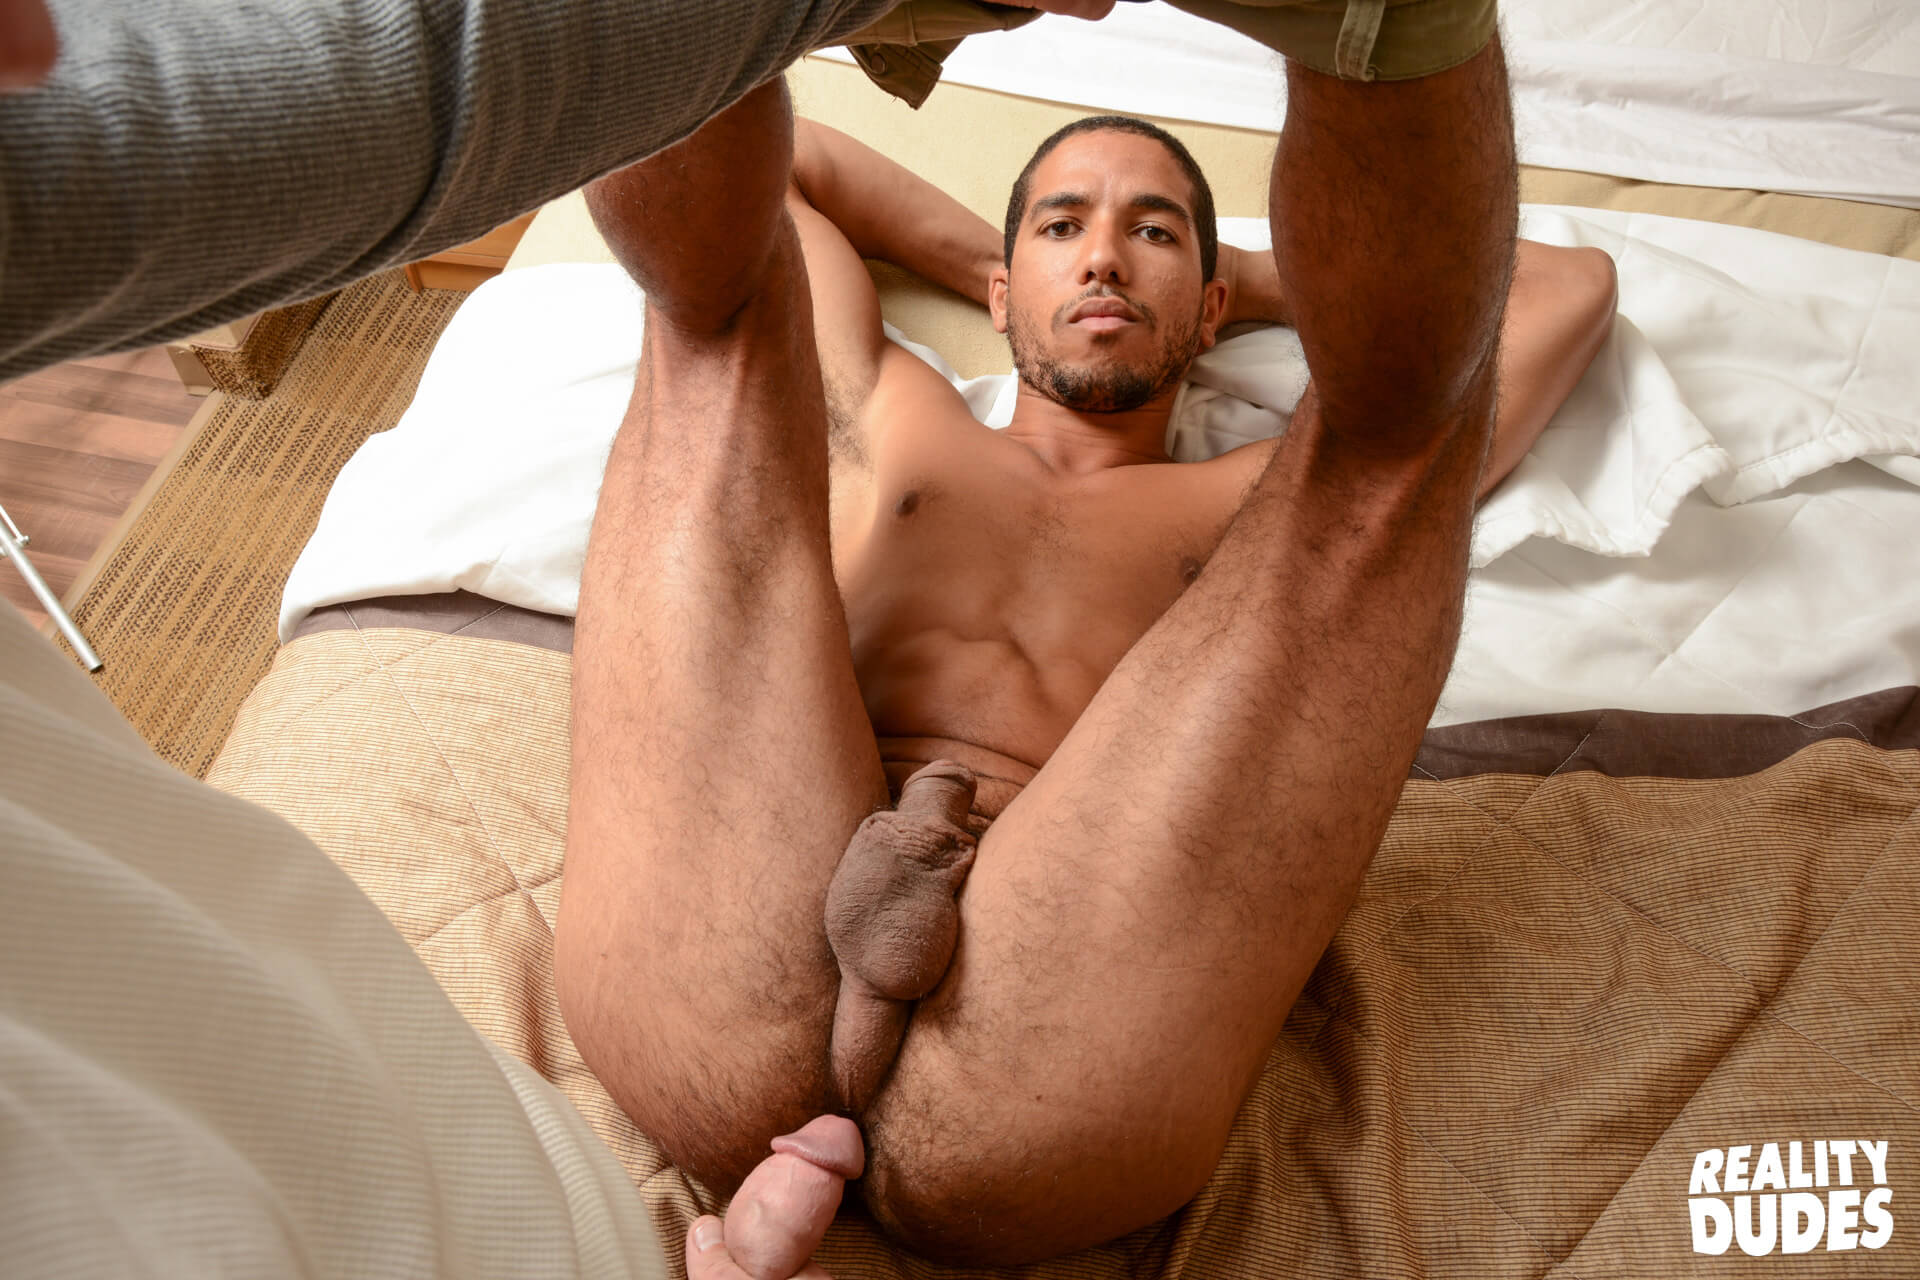 reality dudes str8 chaser mikey gay porn blog image 22